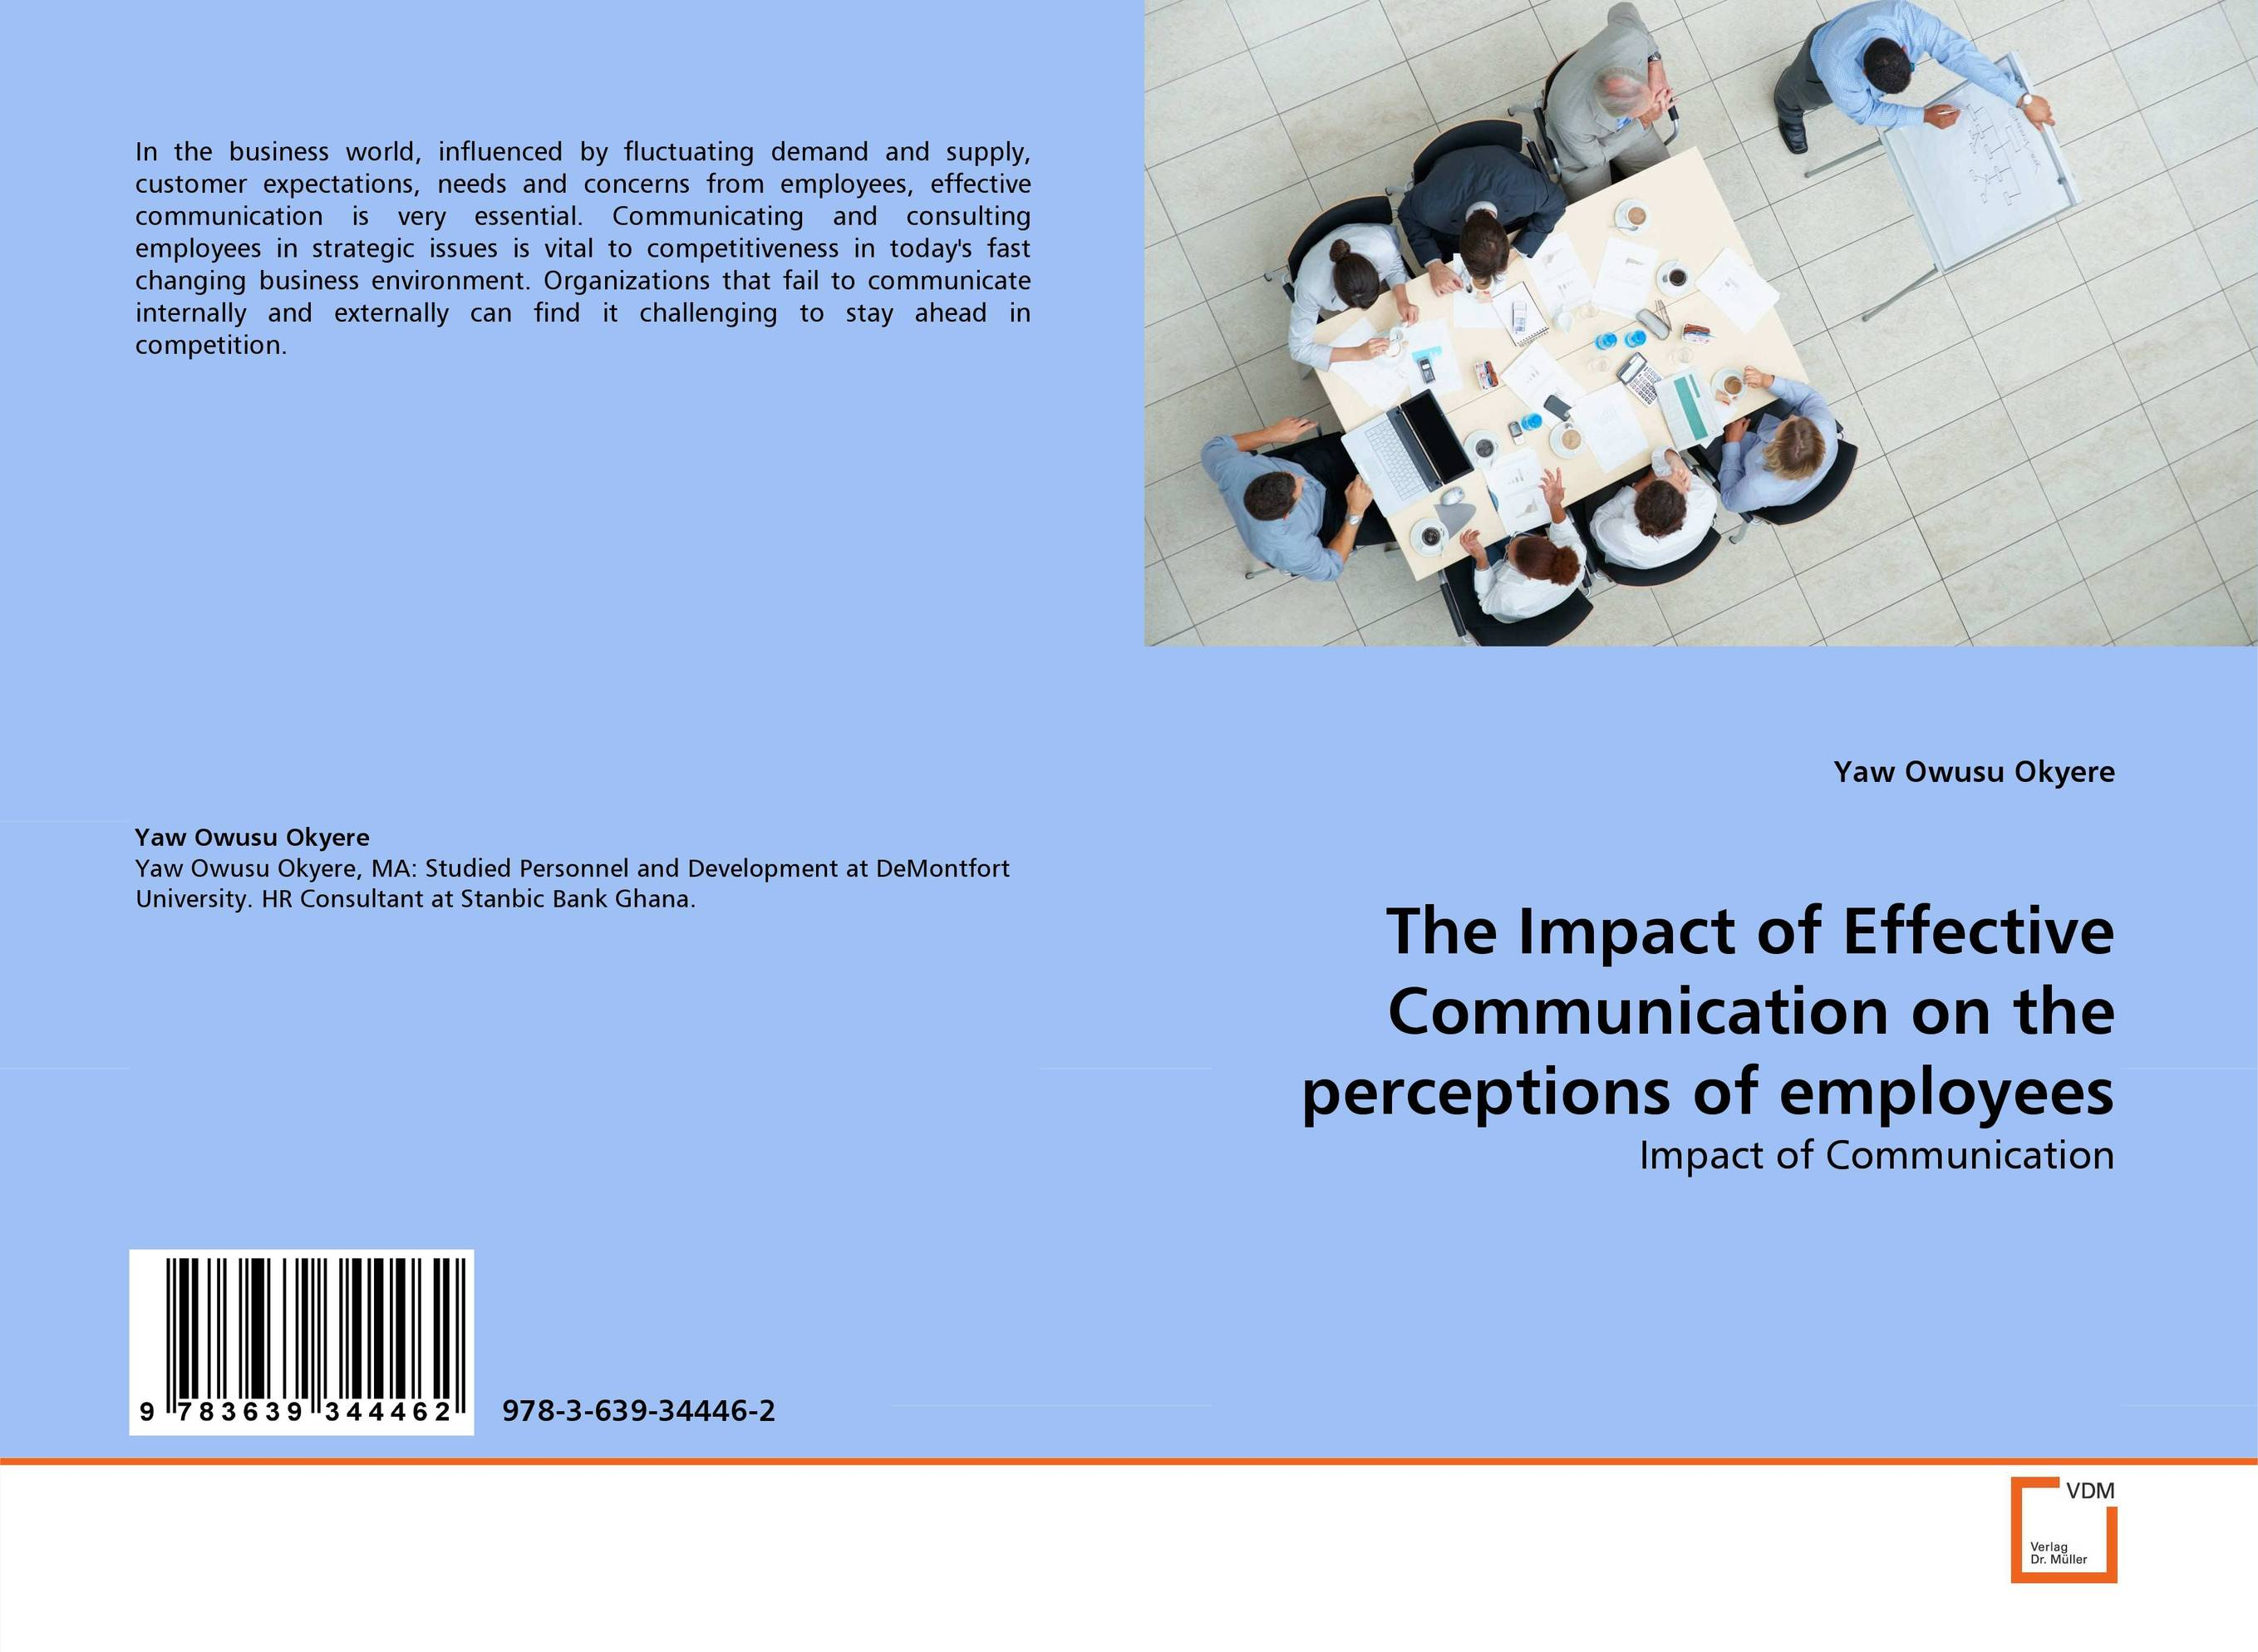 The Impact of Effective Communication on the perceptions of employees effective communication